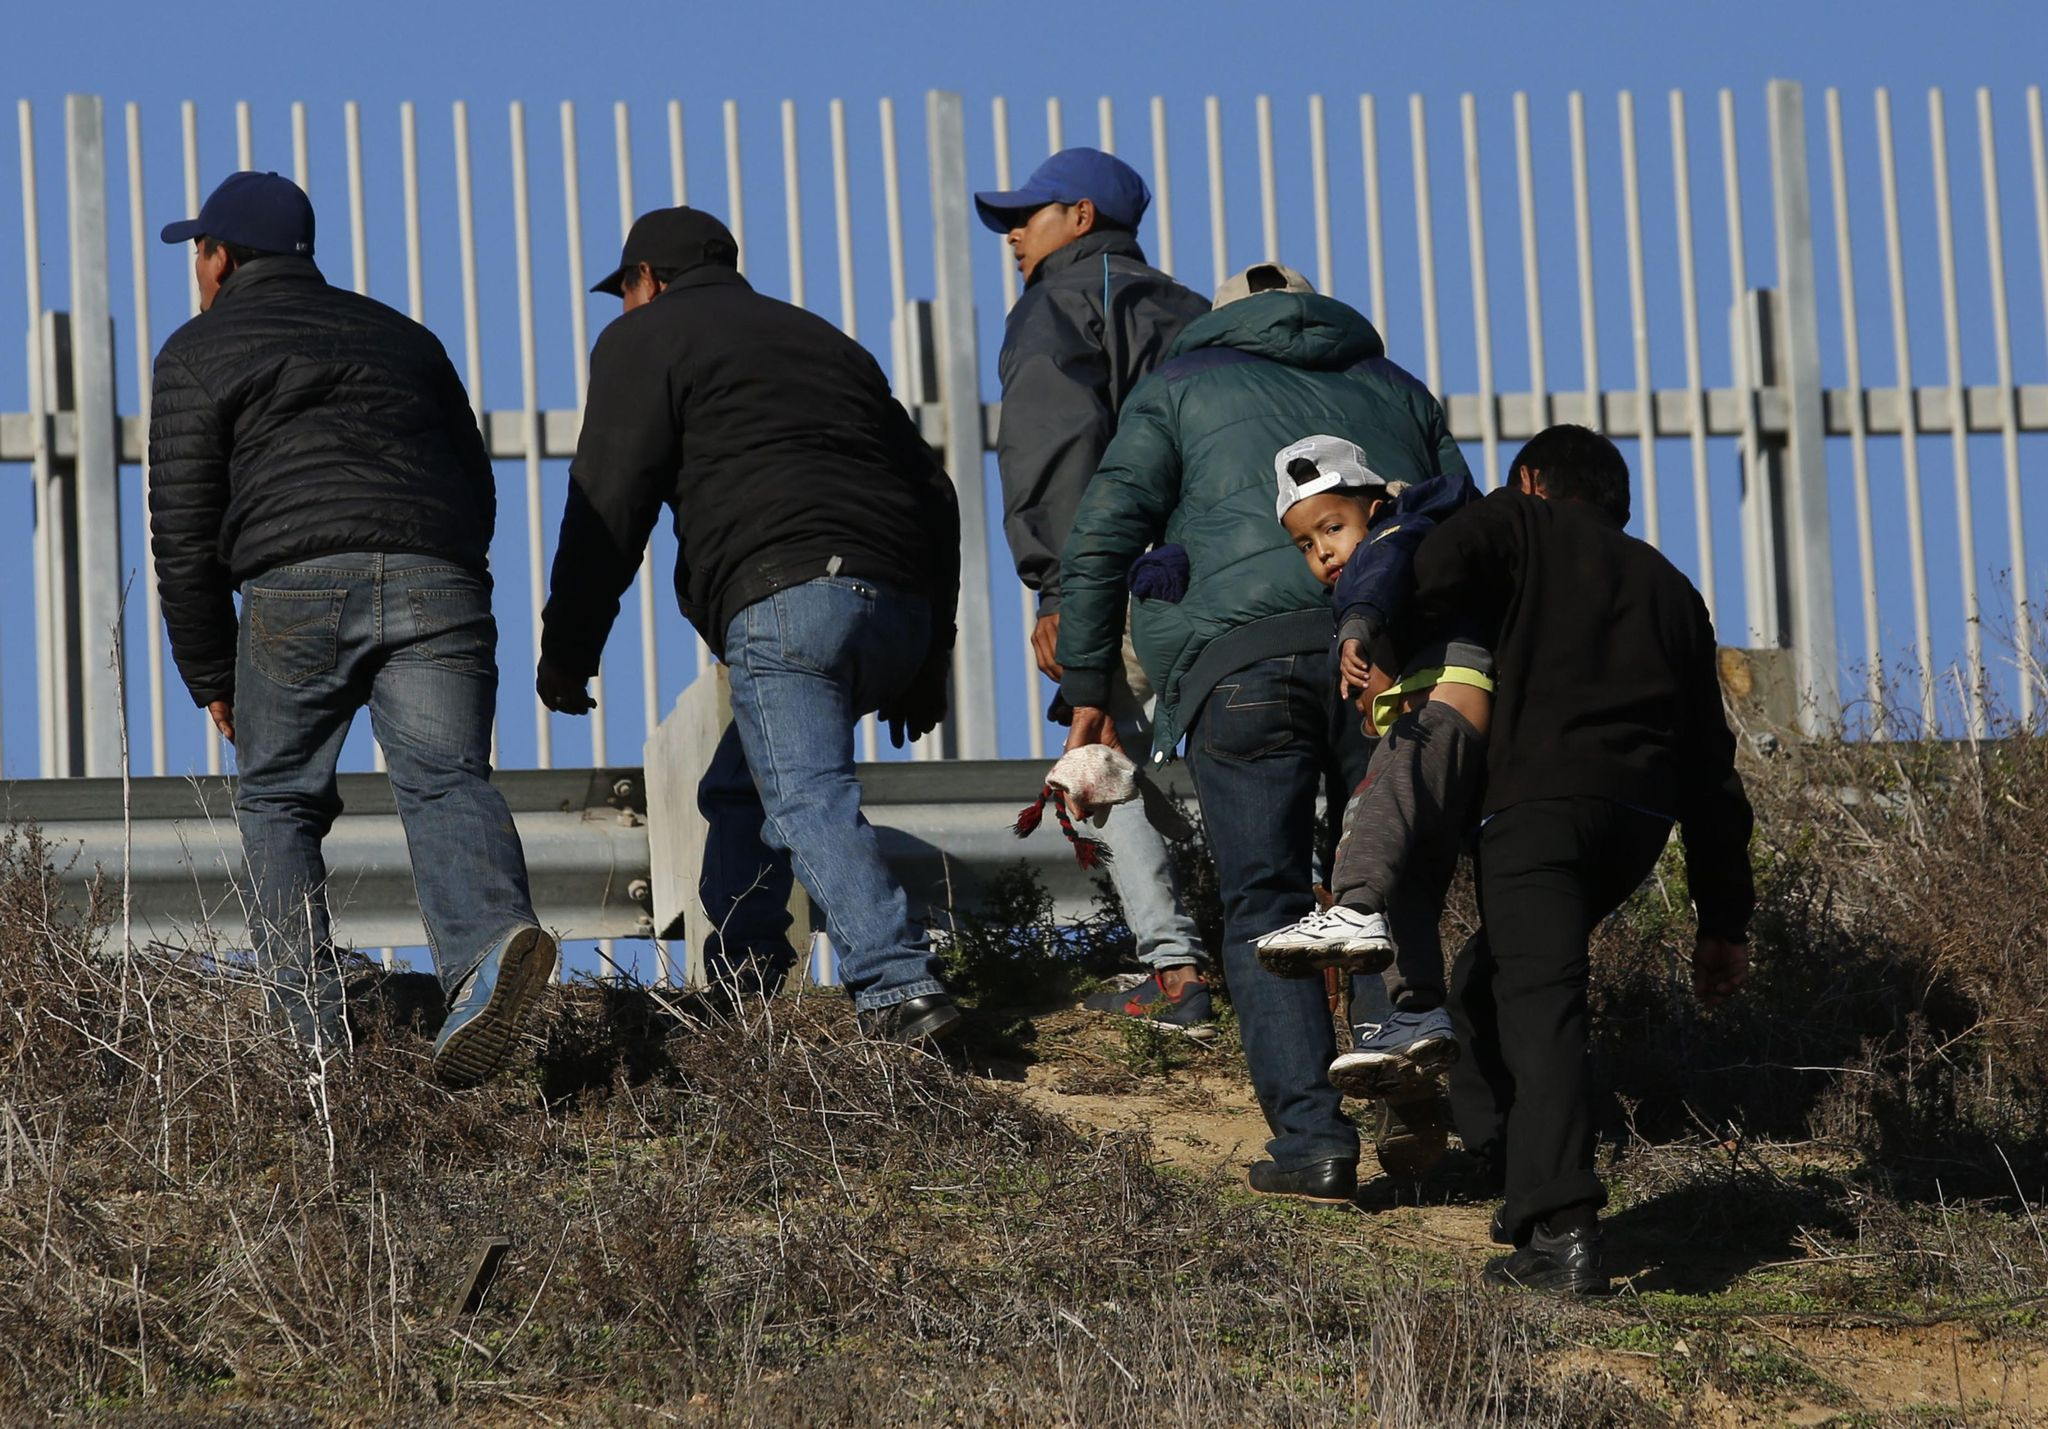 Homeland Security won't ship illegal immigrants across the nation